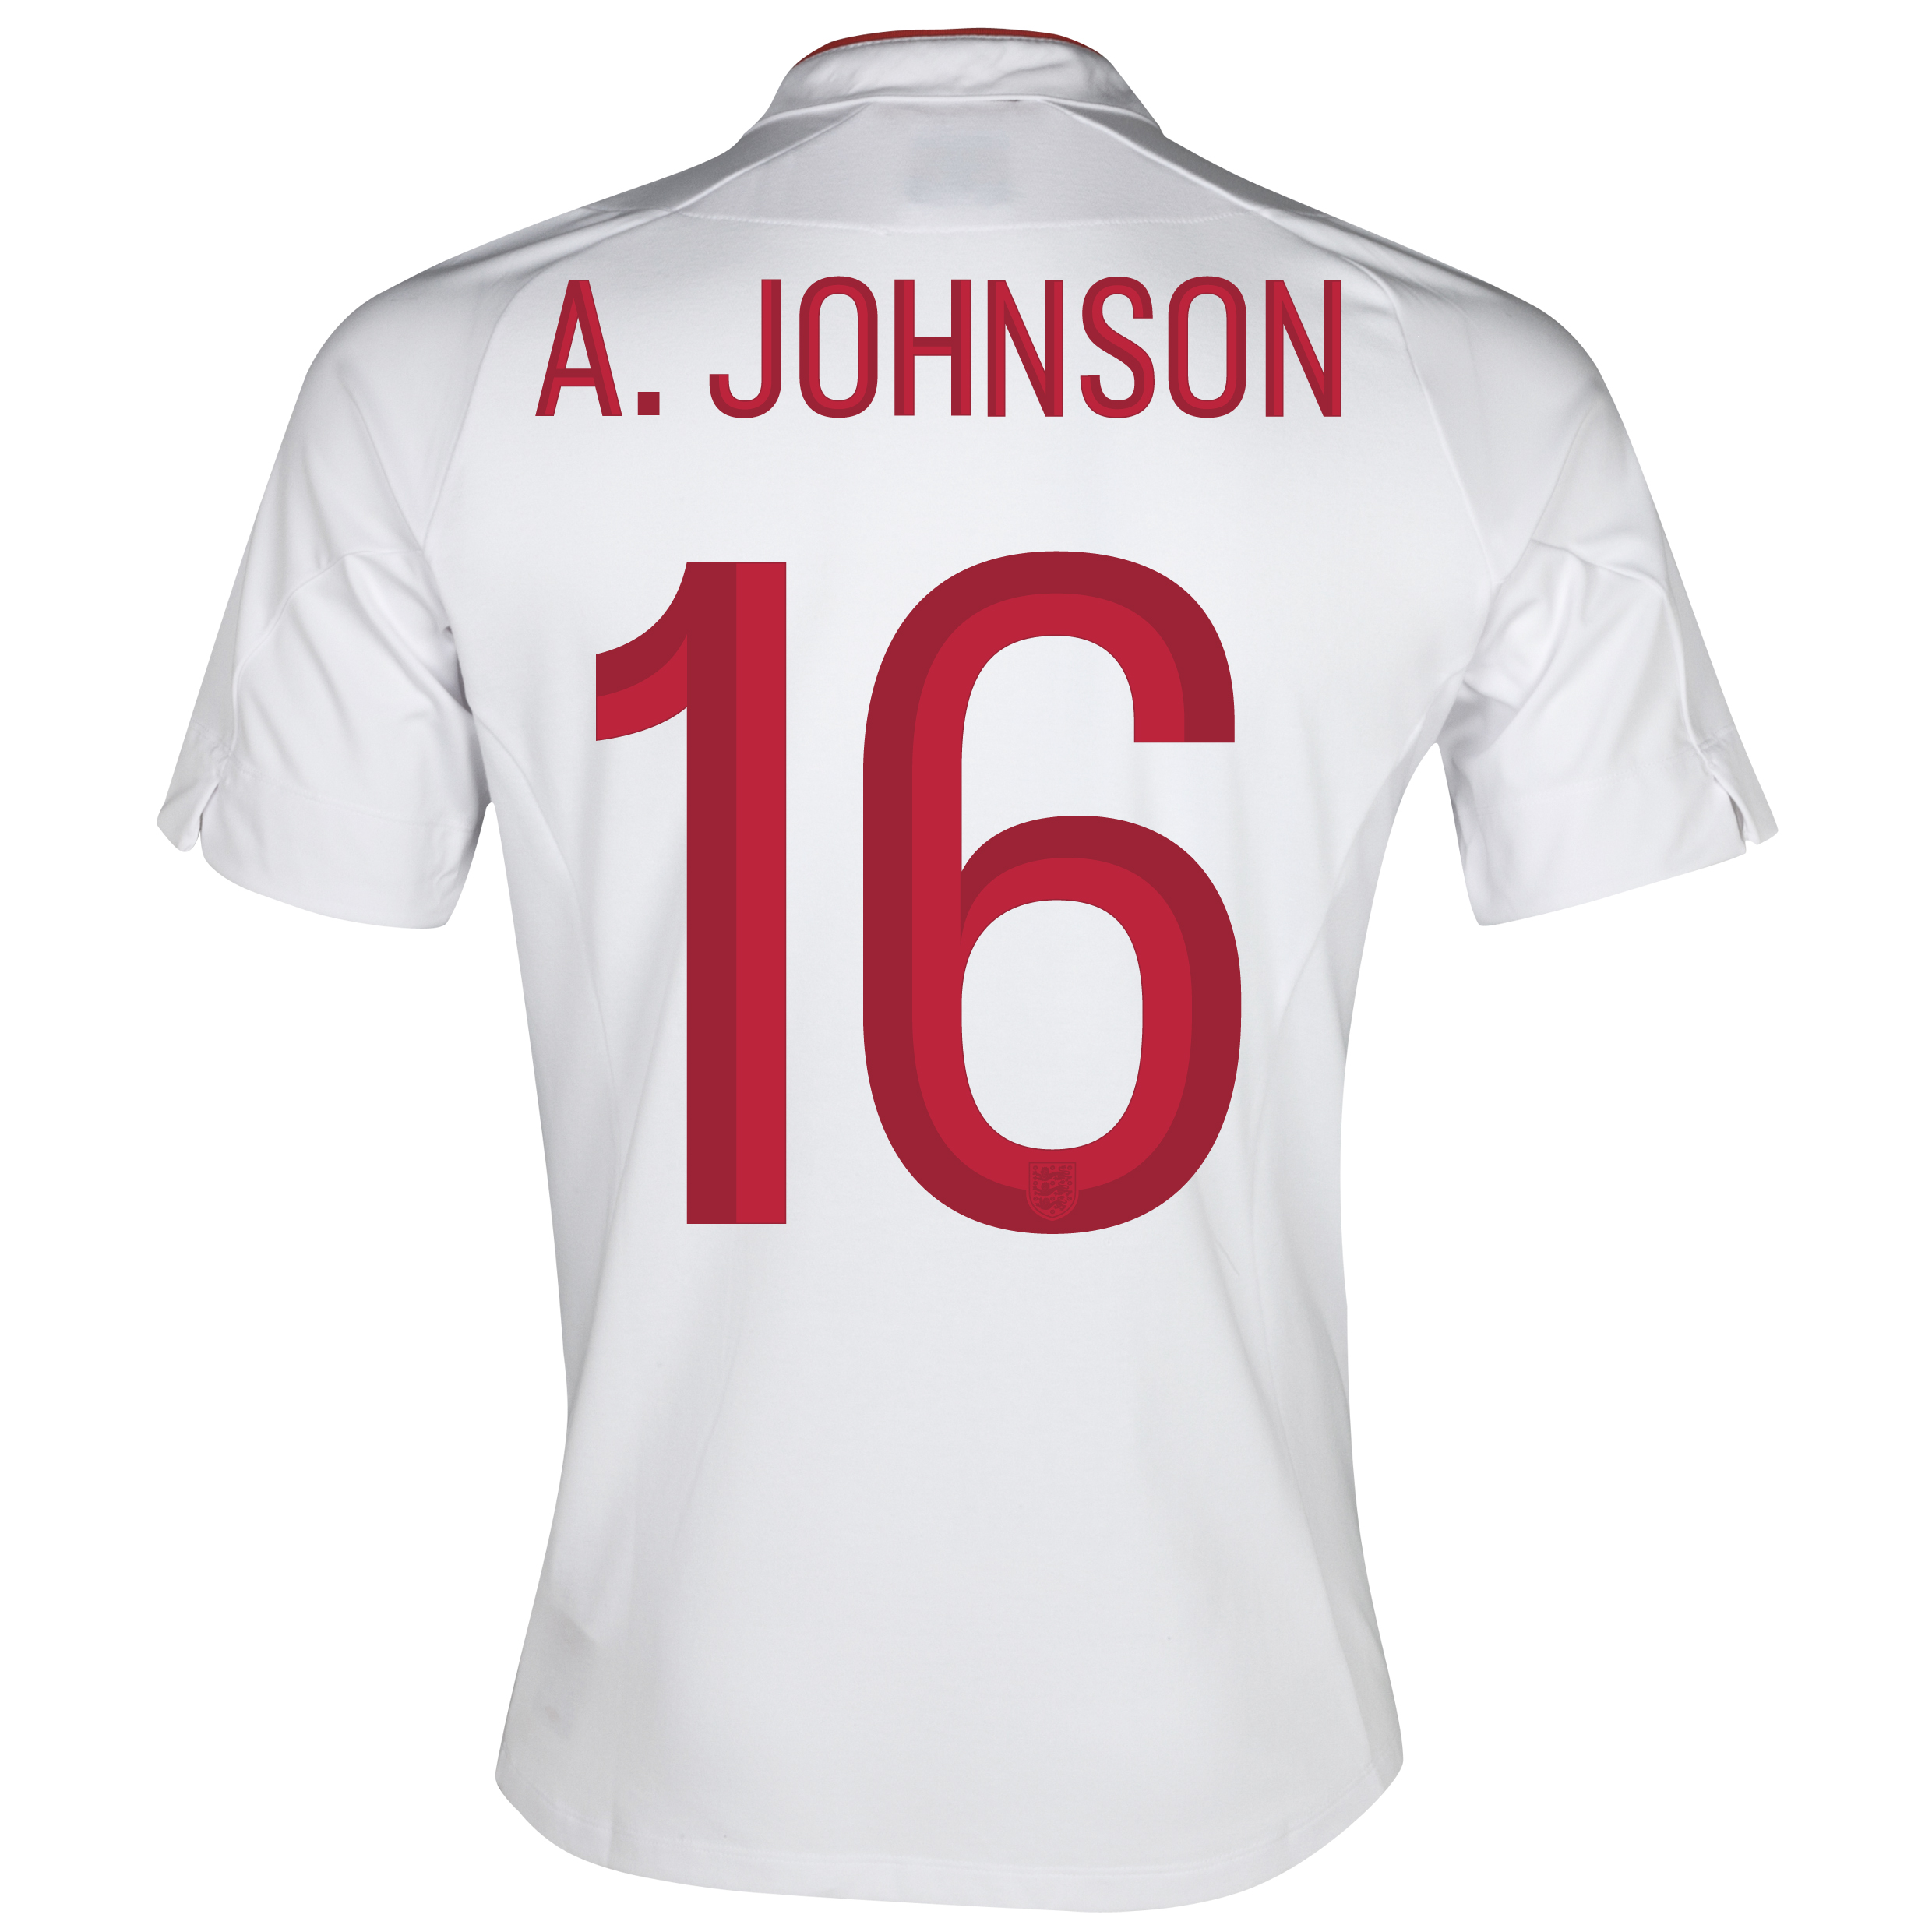 England Home Shirt 2012/13 - Boys with A.Johnson 16 printing